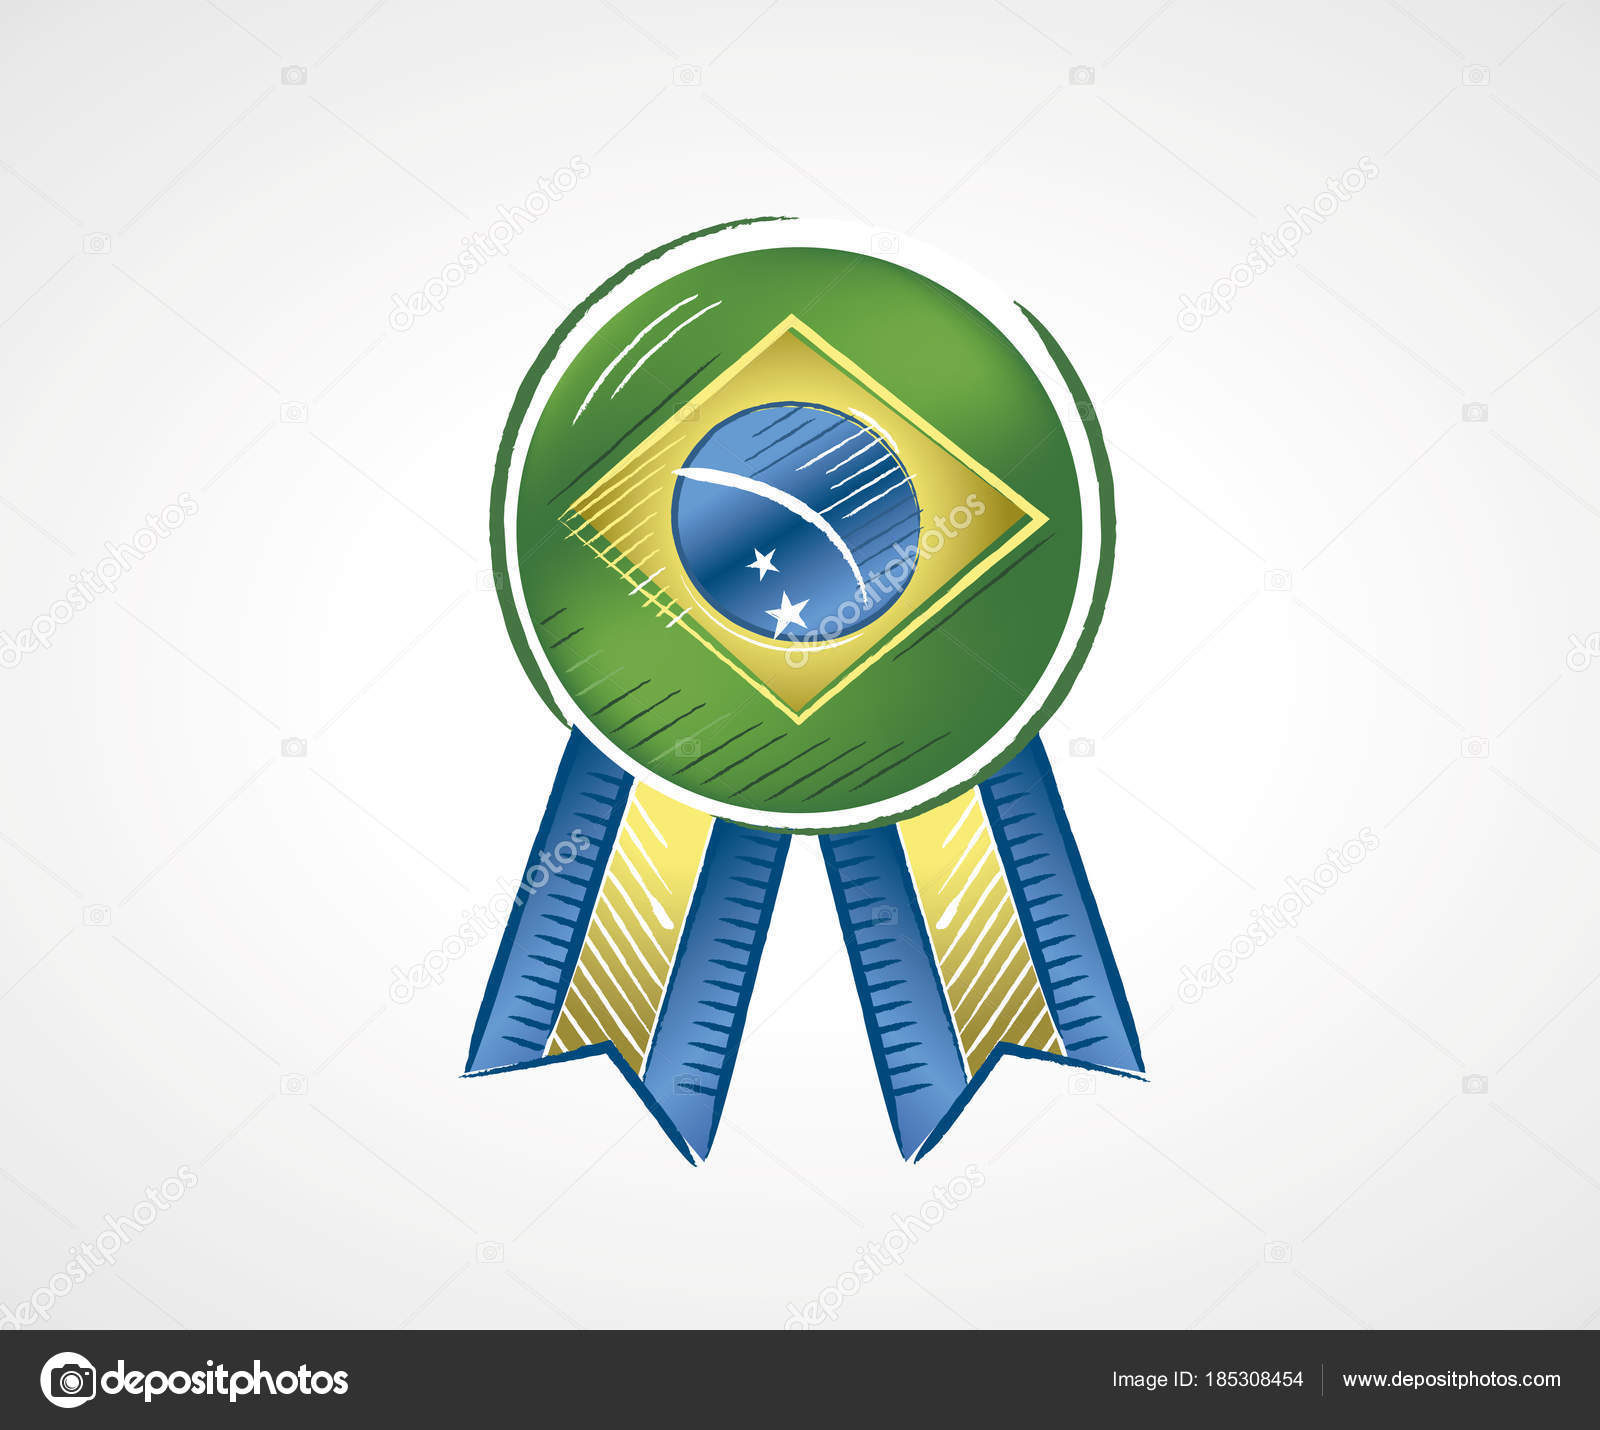 Medal with the flag of Brazil with vivid colors in draft